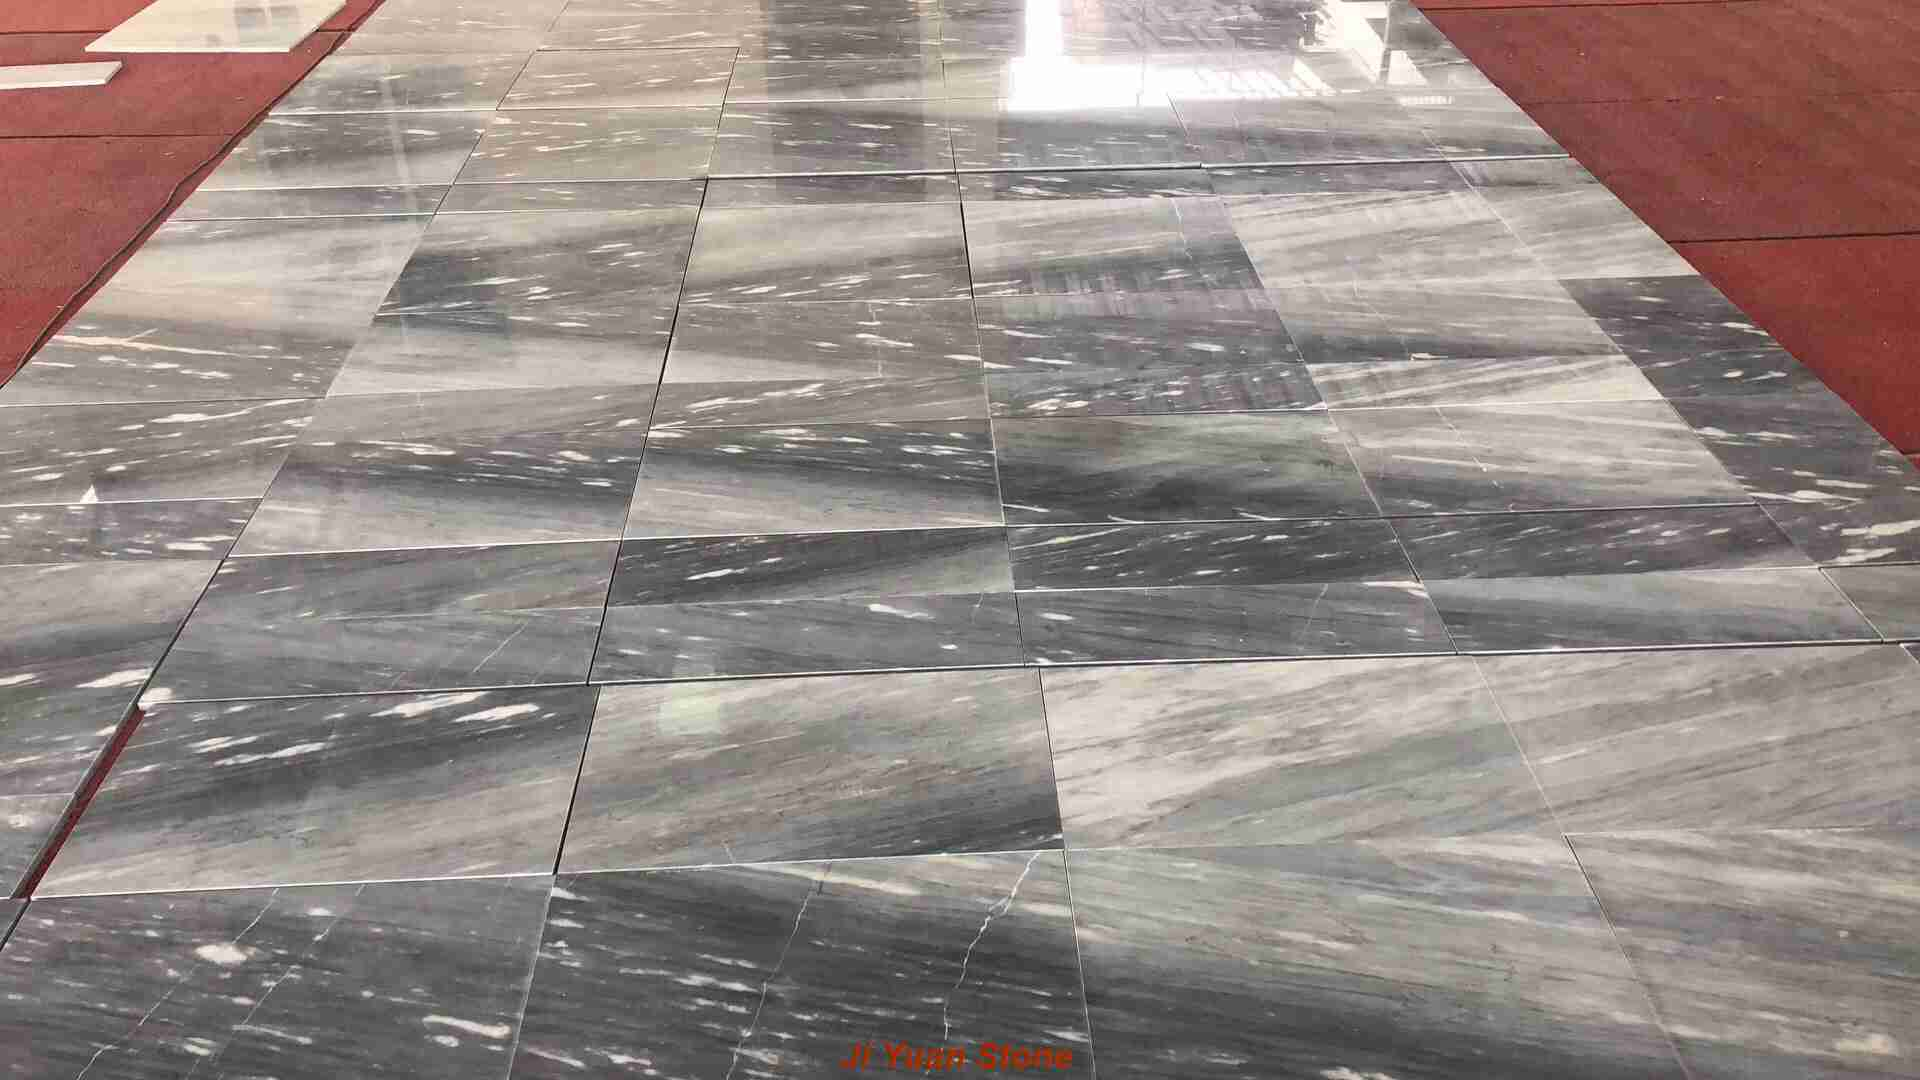 palissandro countertop,palissandro blue,palissandro white,palissandro wall,palissandro vanity top,palissandro stone,palissandro marble slab,palissandro marble tile